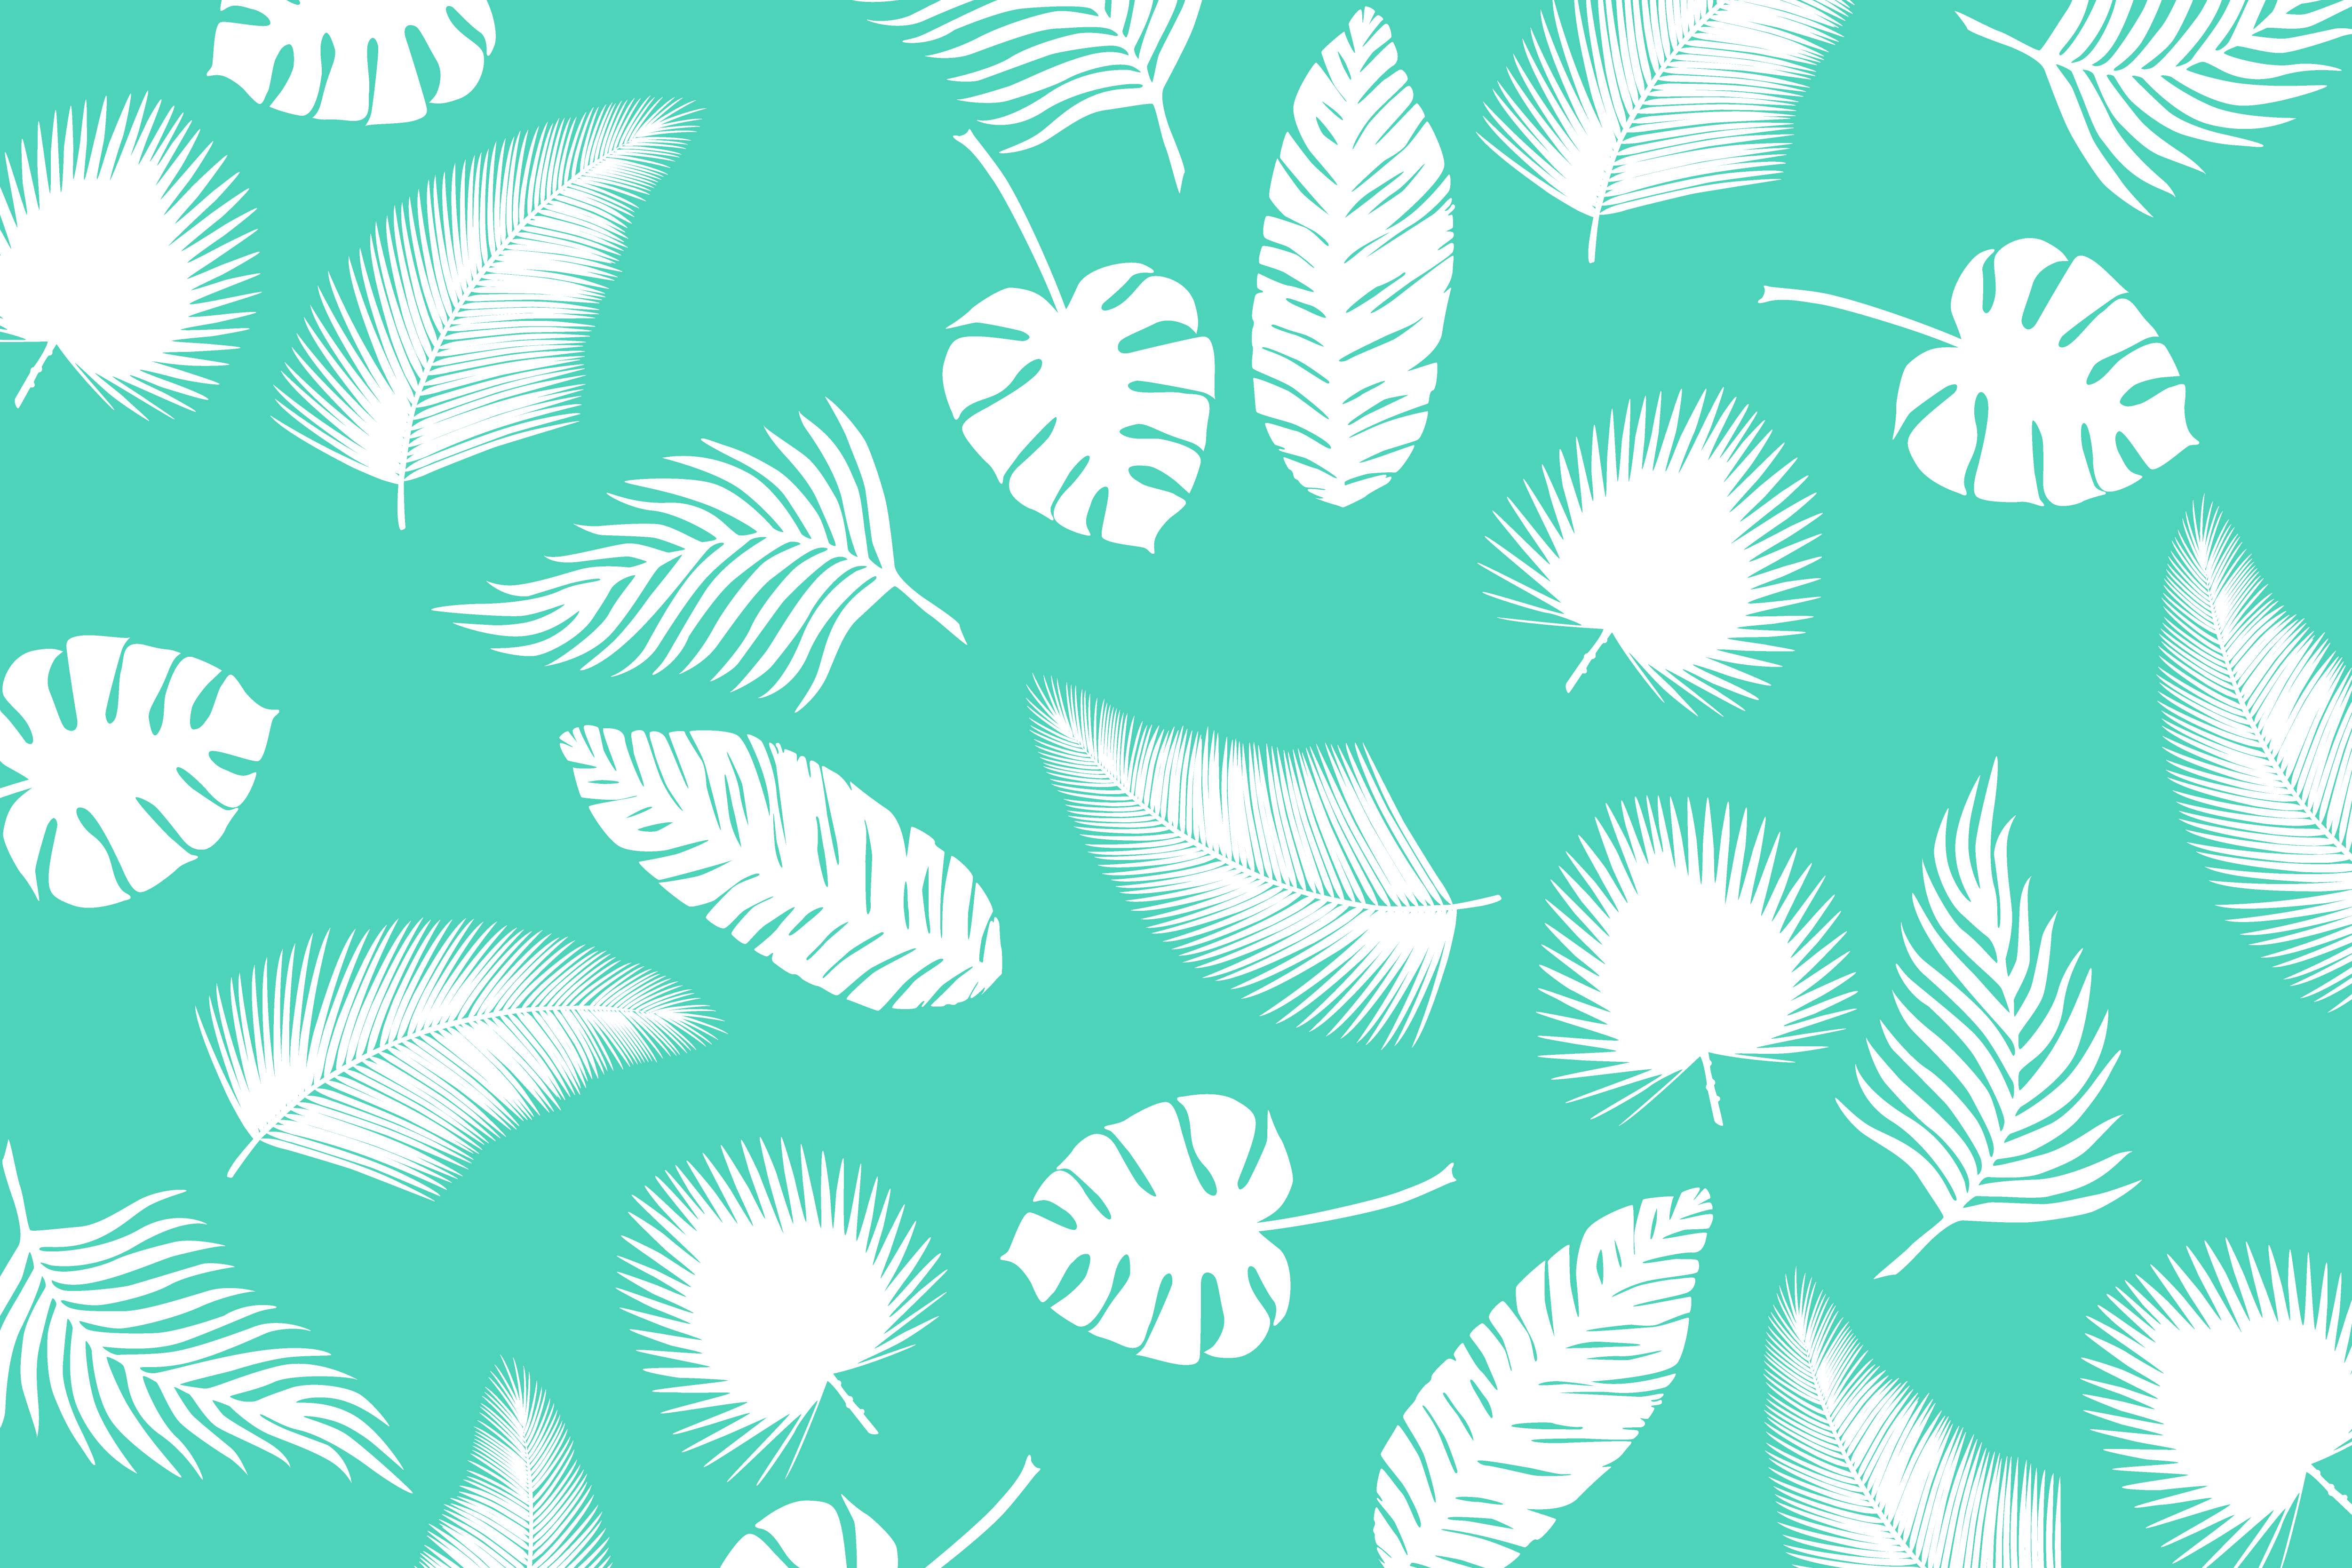 Vector Leaves Turquoise Pattern Psdgraphics